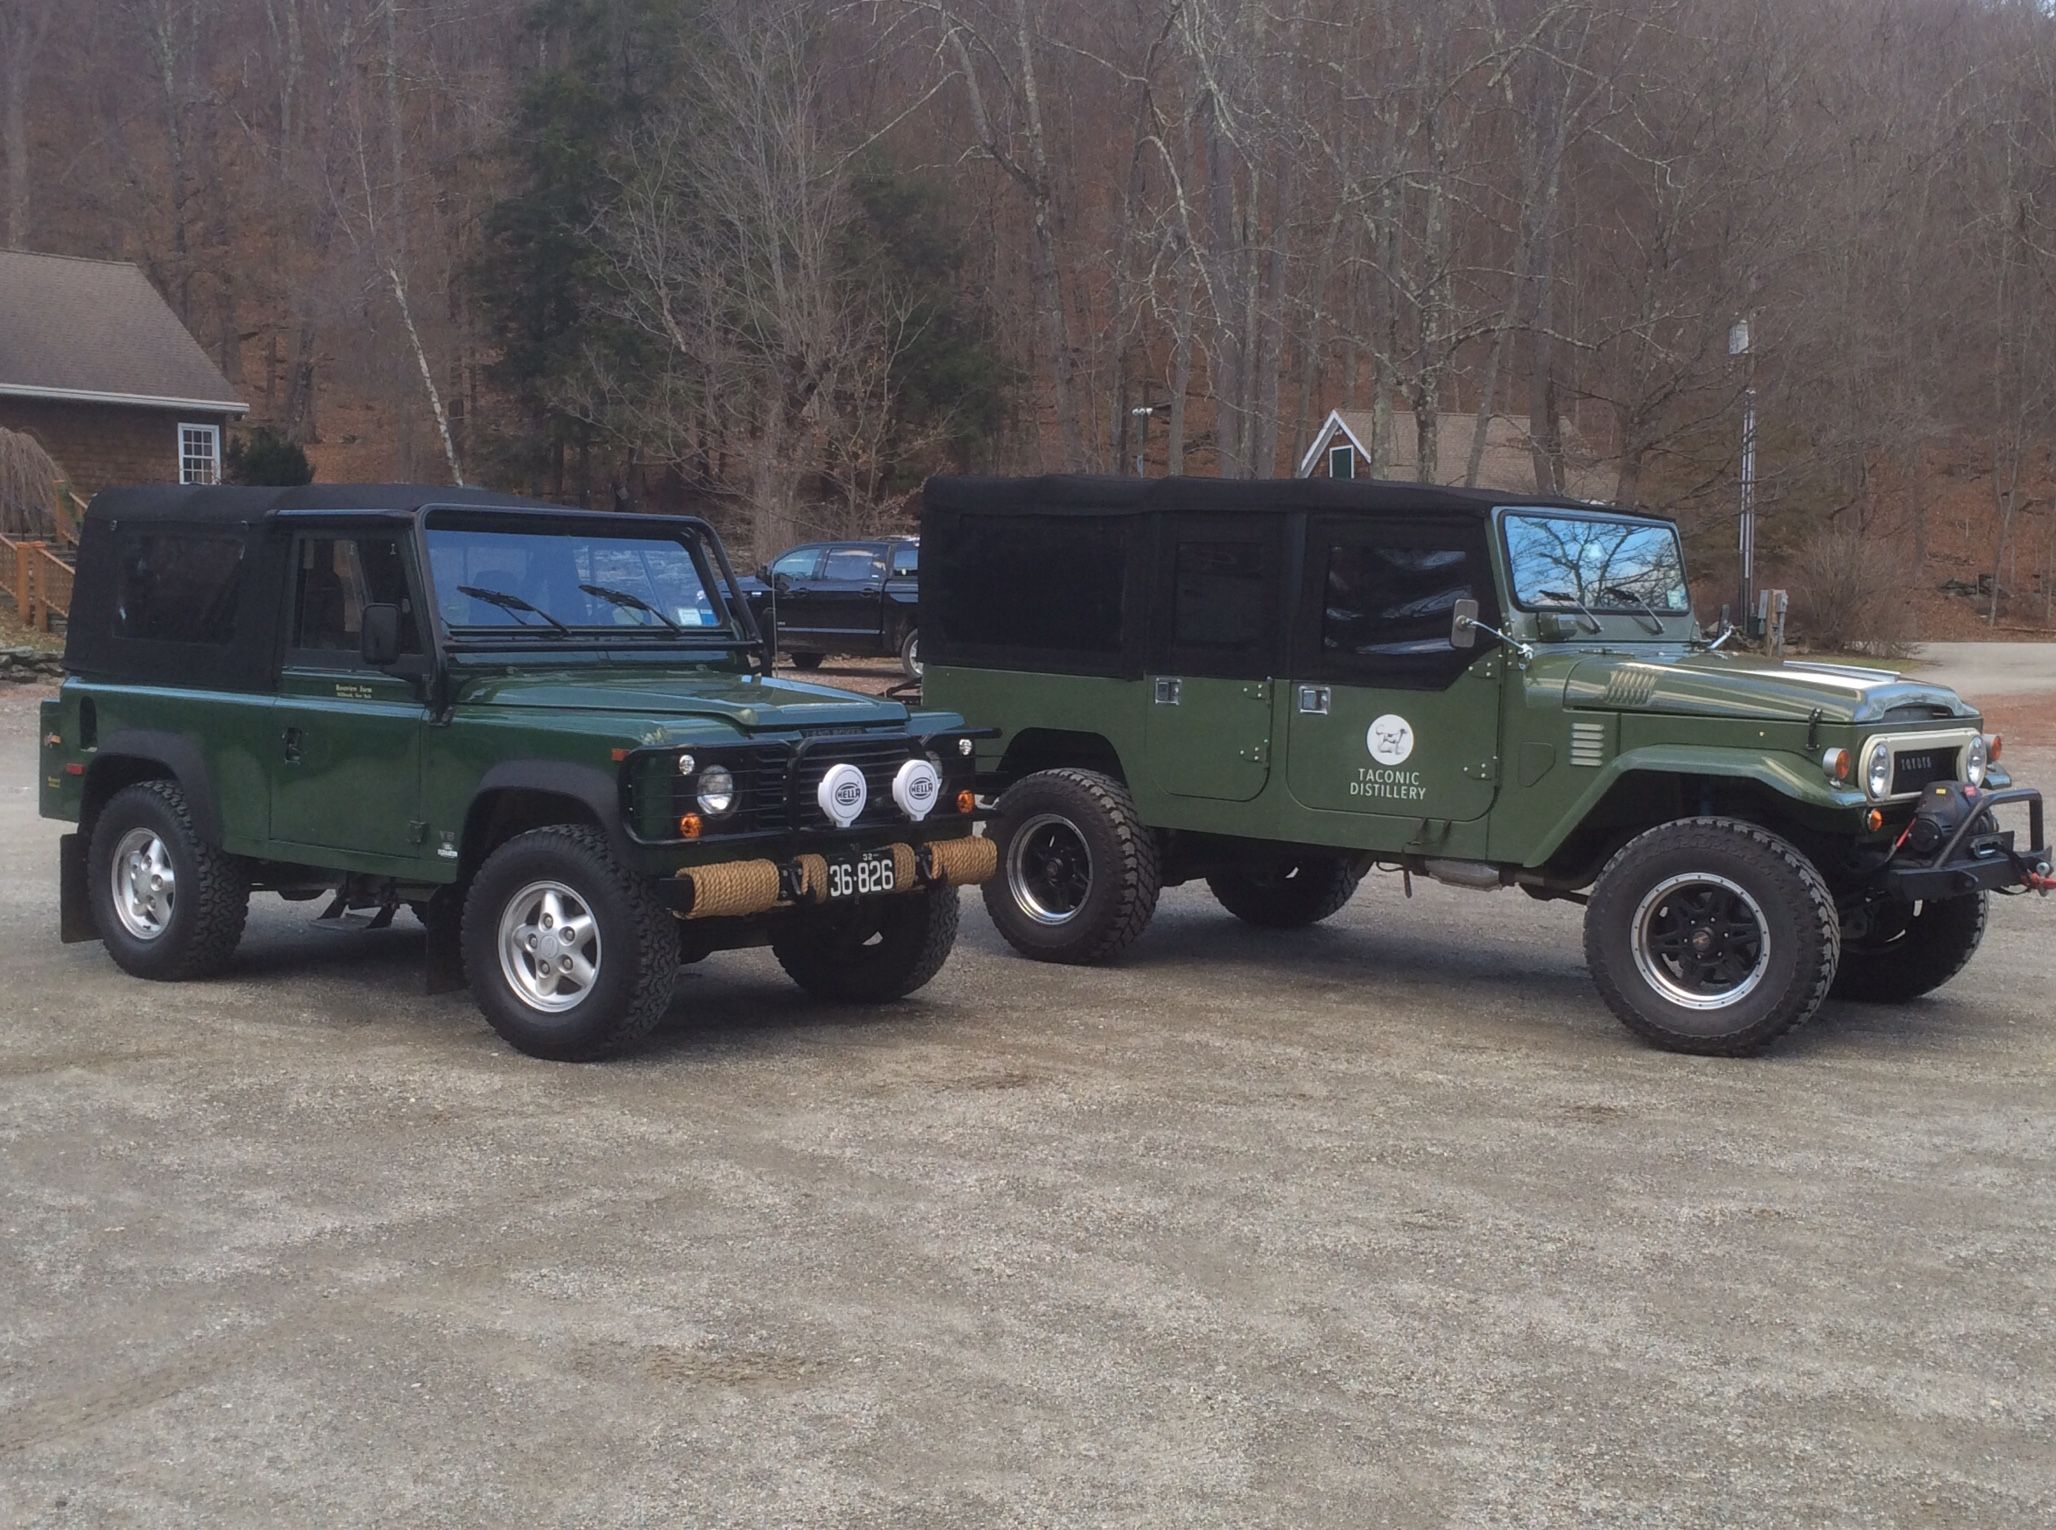 Down At The Preserve Land Cruiser Vs Land Rover Defender Land Rover Defender Land Rover Land Cruiser